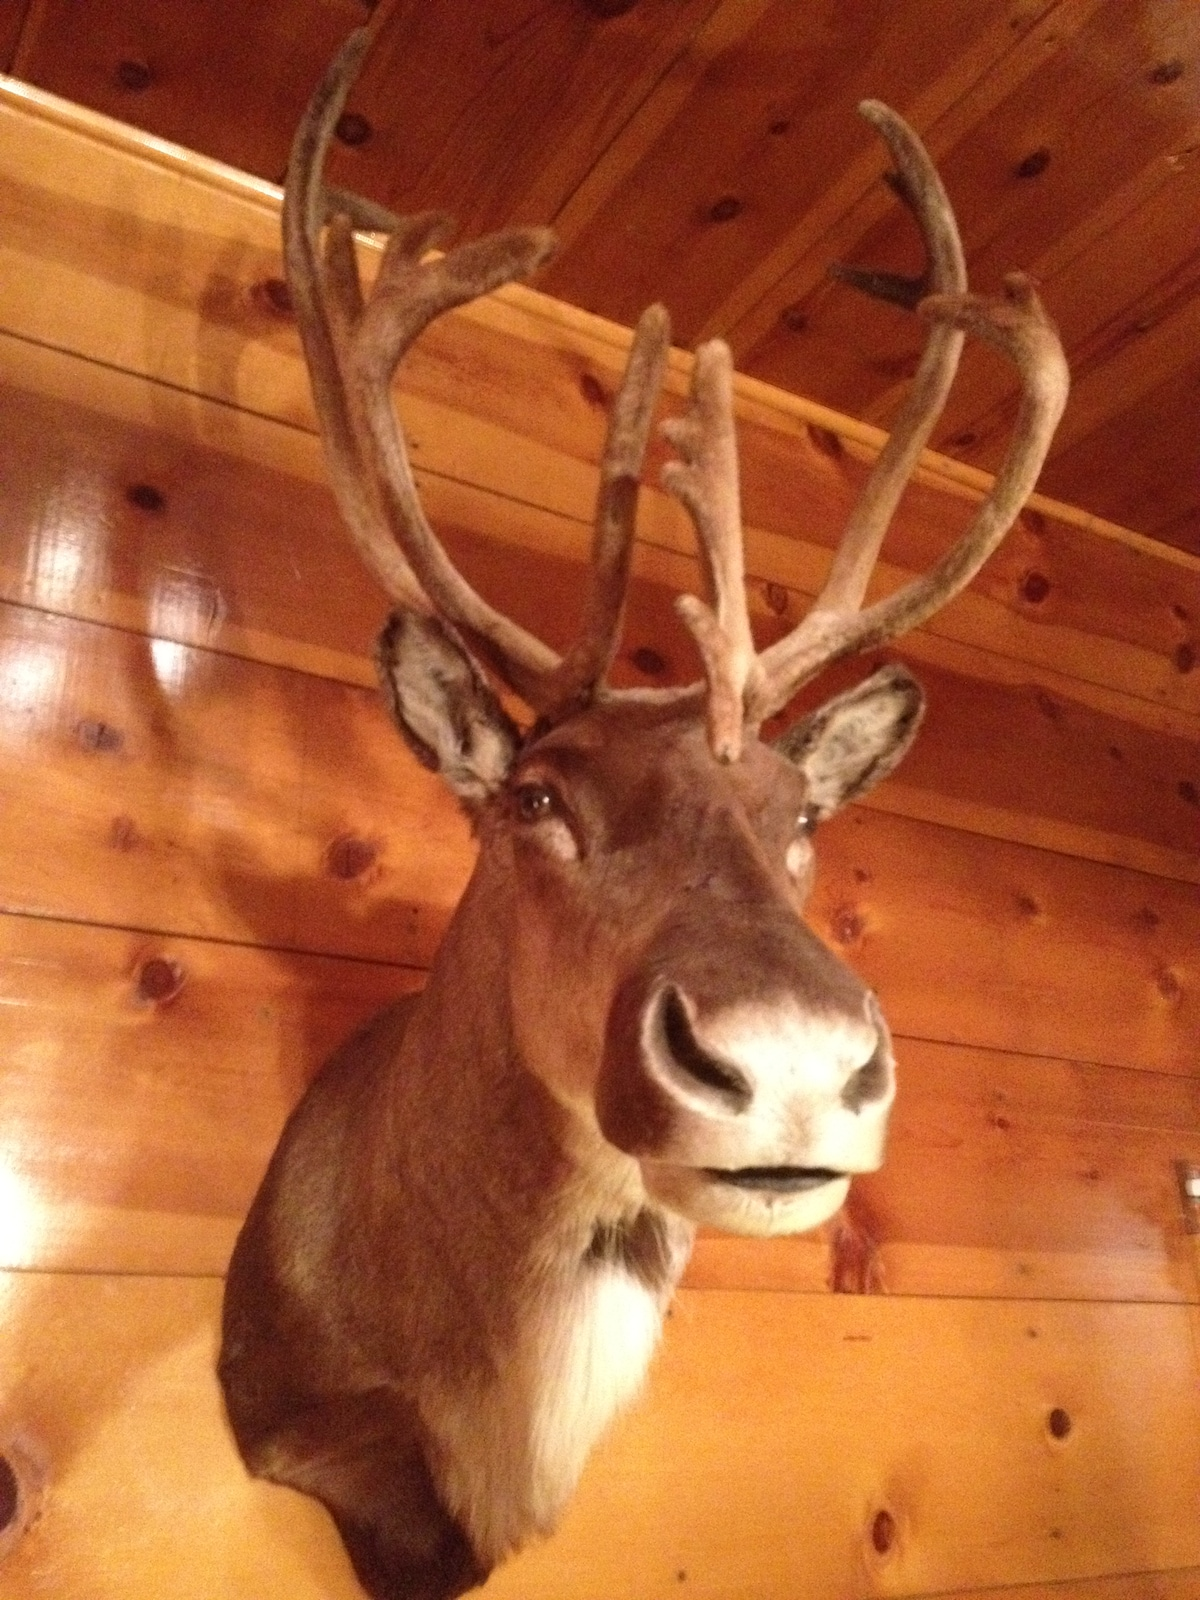 The reindeer of Reindeer Cottage. Yes, he's real (please don't touch; he can't grow back the hairs that fall out). He hangs above the fireplace in the cabin.